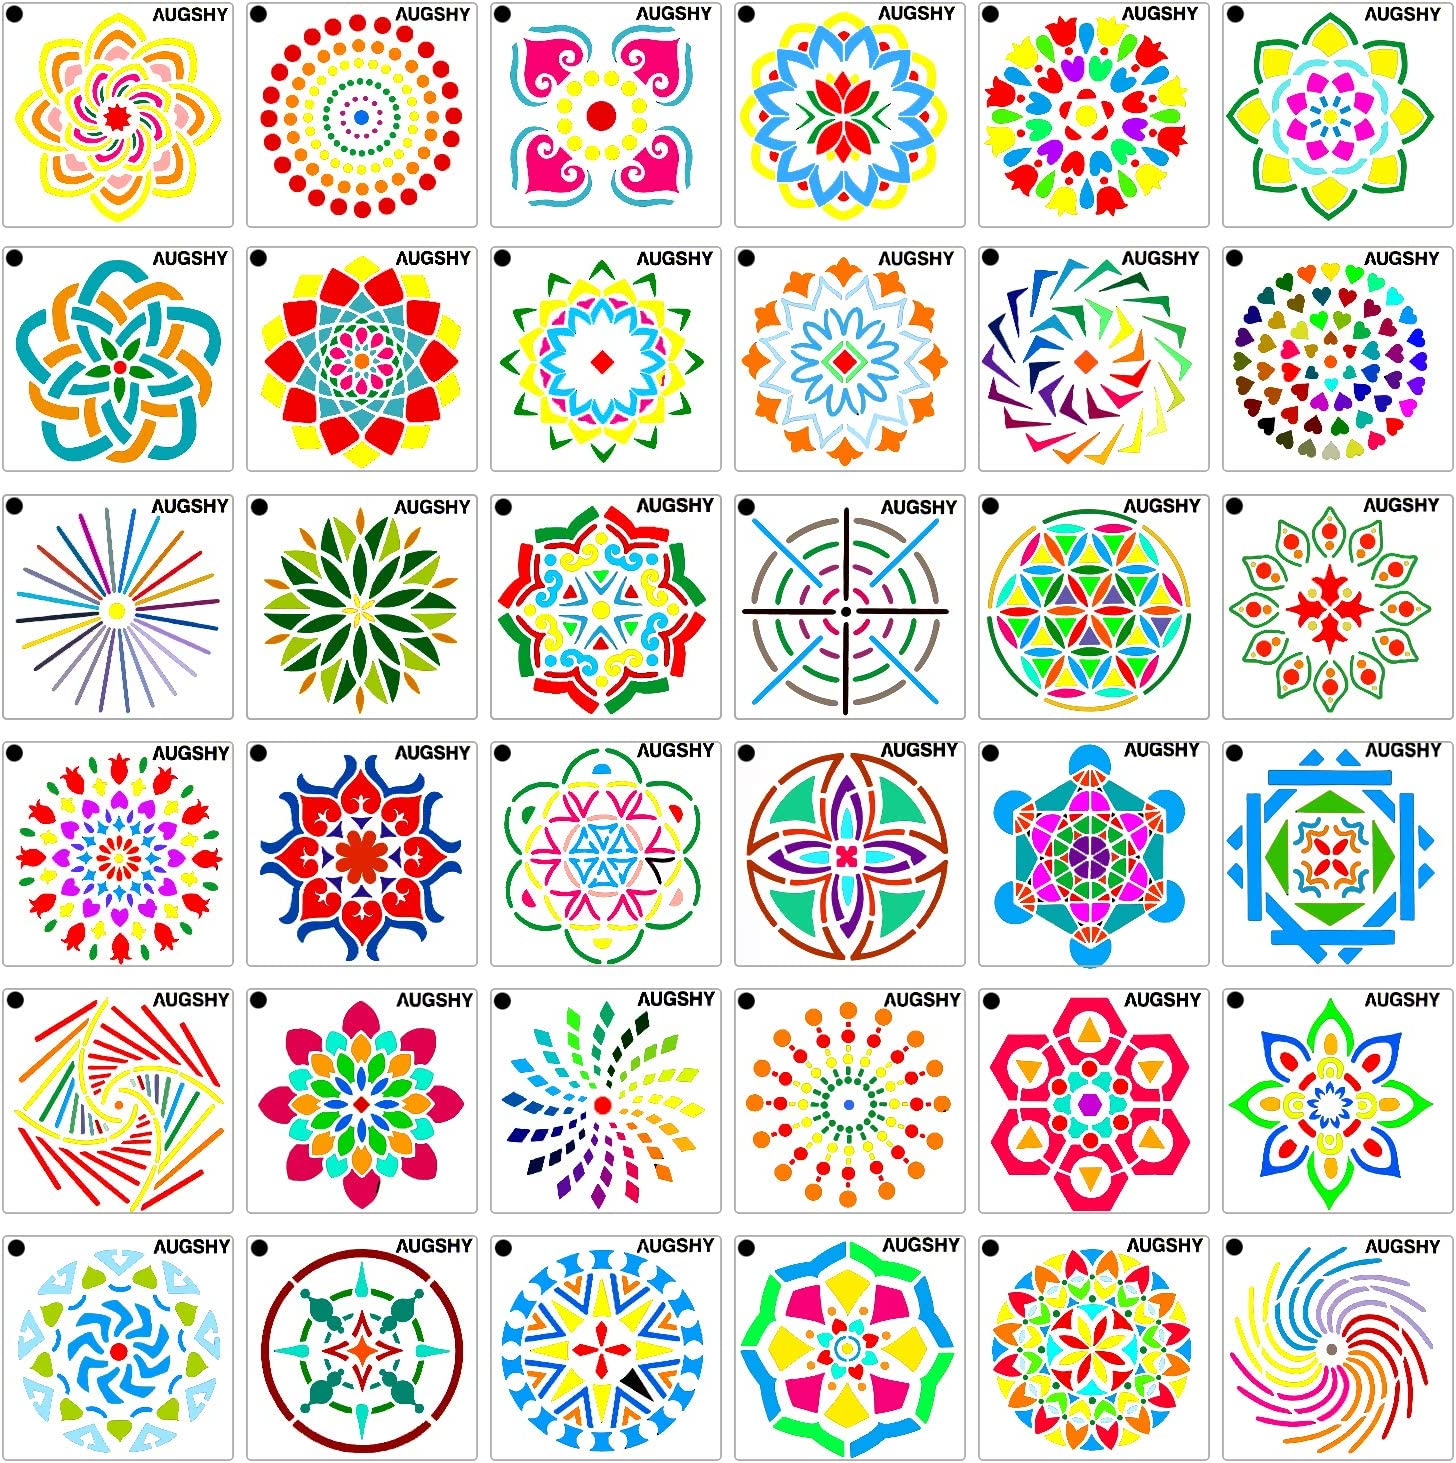 36 Pack Mandala Dot Painting Templates Stencils Perfect for DIY Rock Painting Art Projects (3.6x3.6 inch)